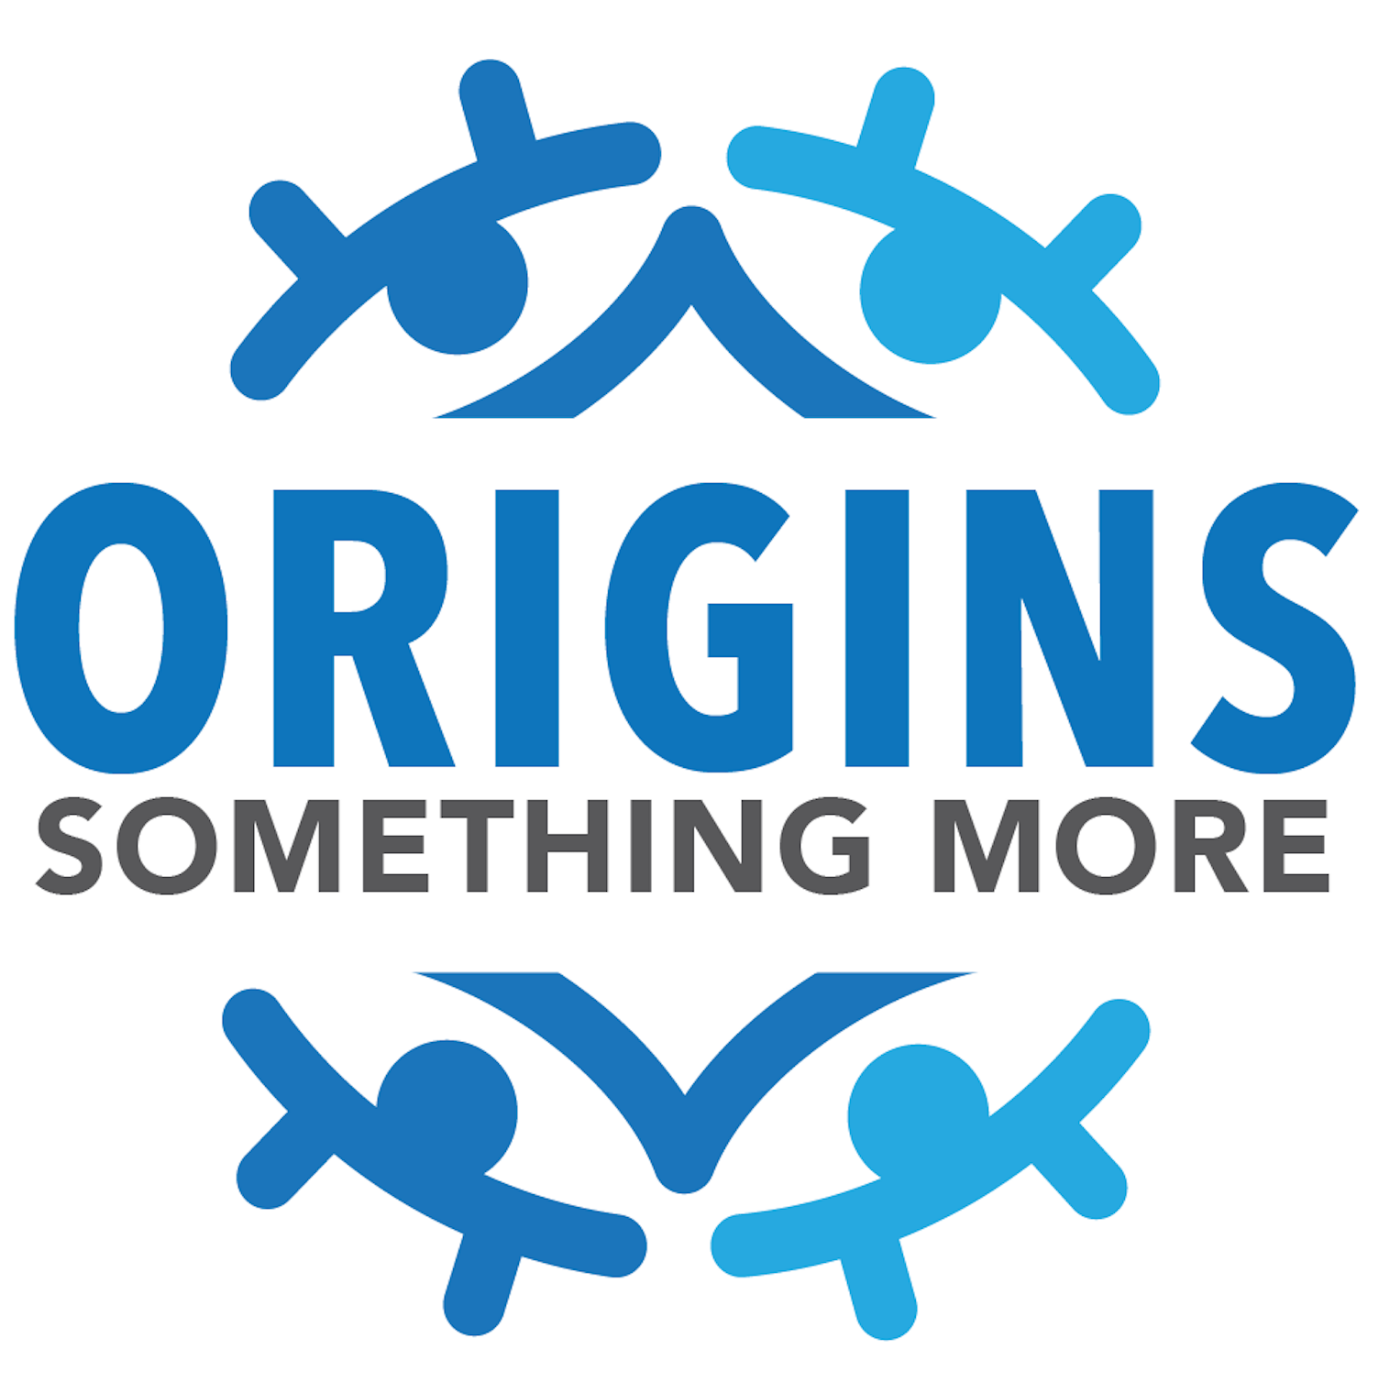 Origins: Something More